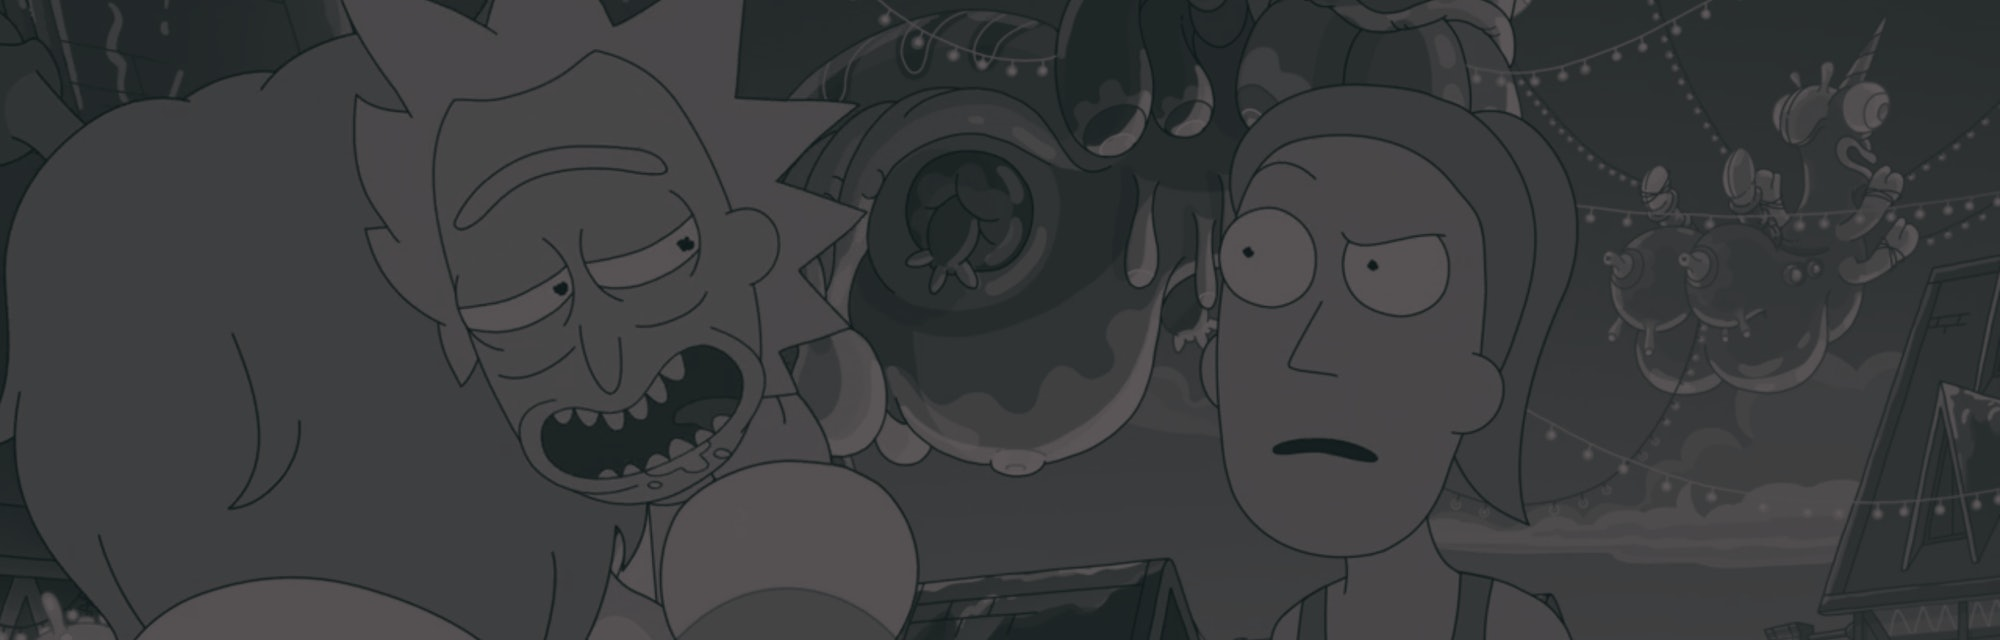 Rick And Morty Season 5 Hulu And Hbo Max Release Date How To Watch It Online Now